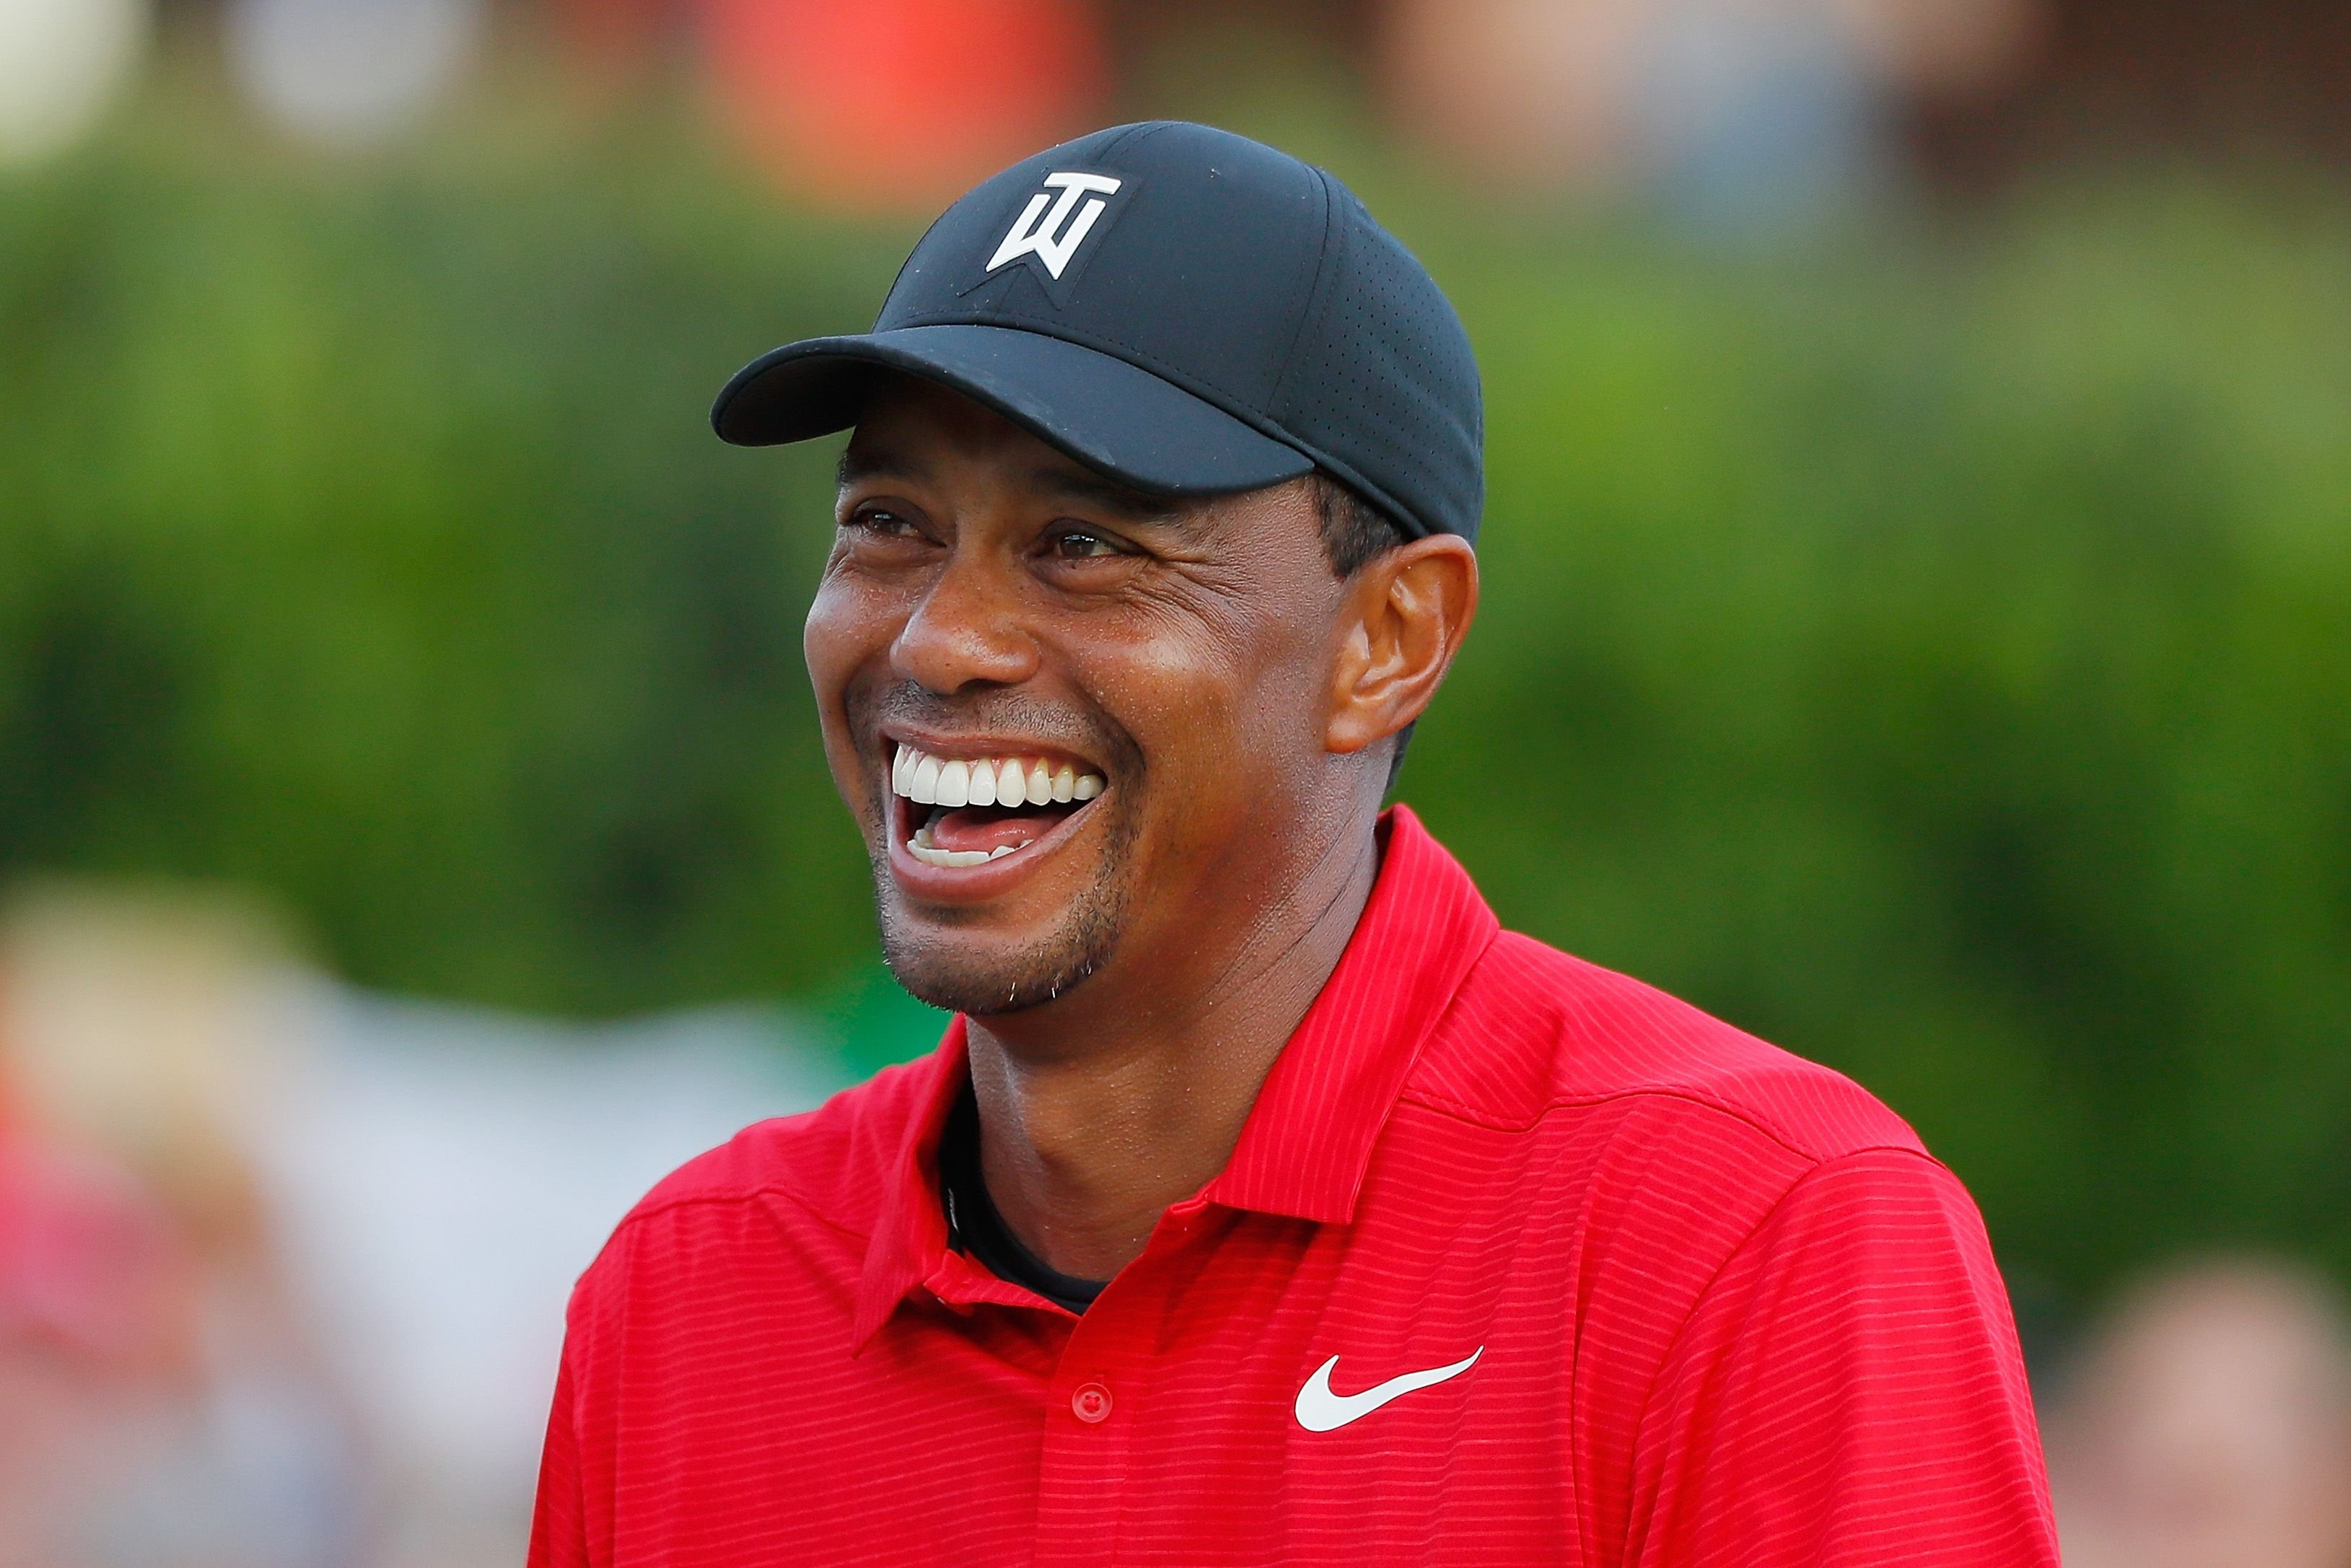 Tiger Woods during the trophy presentation ceremony after winning the TOUR Championship at East Lake Golf Club on September 23, 2018 in Atlanta, Georgia. | Source: Getty Images